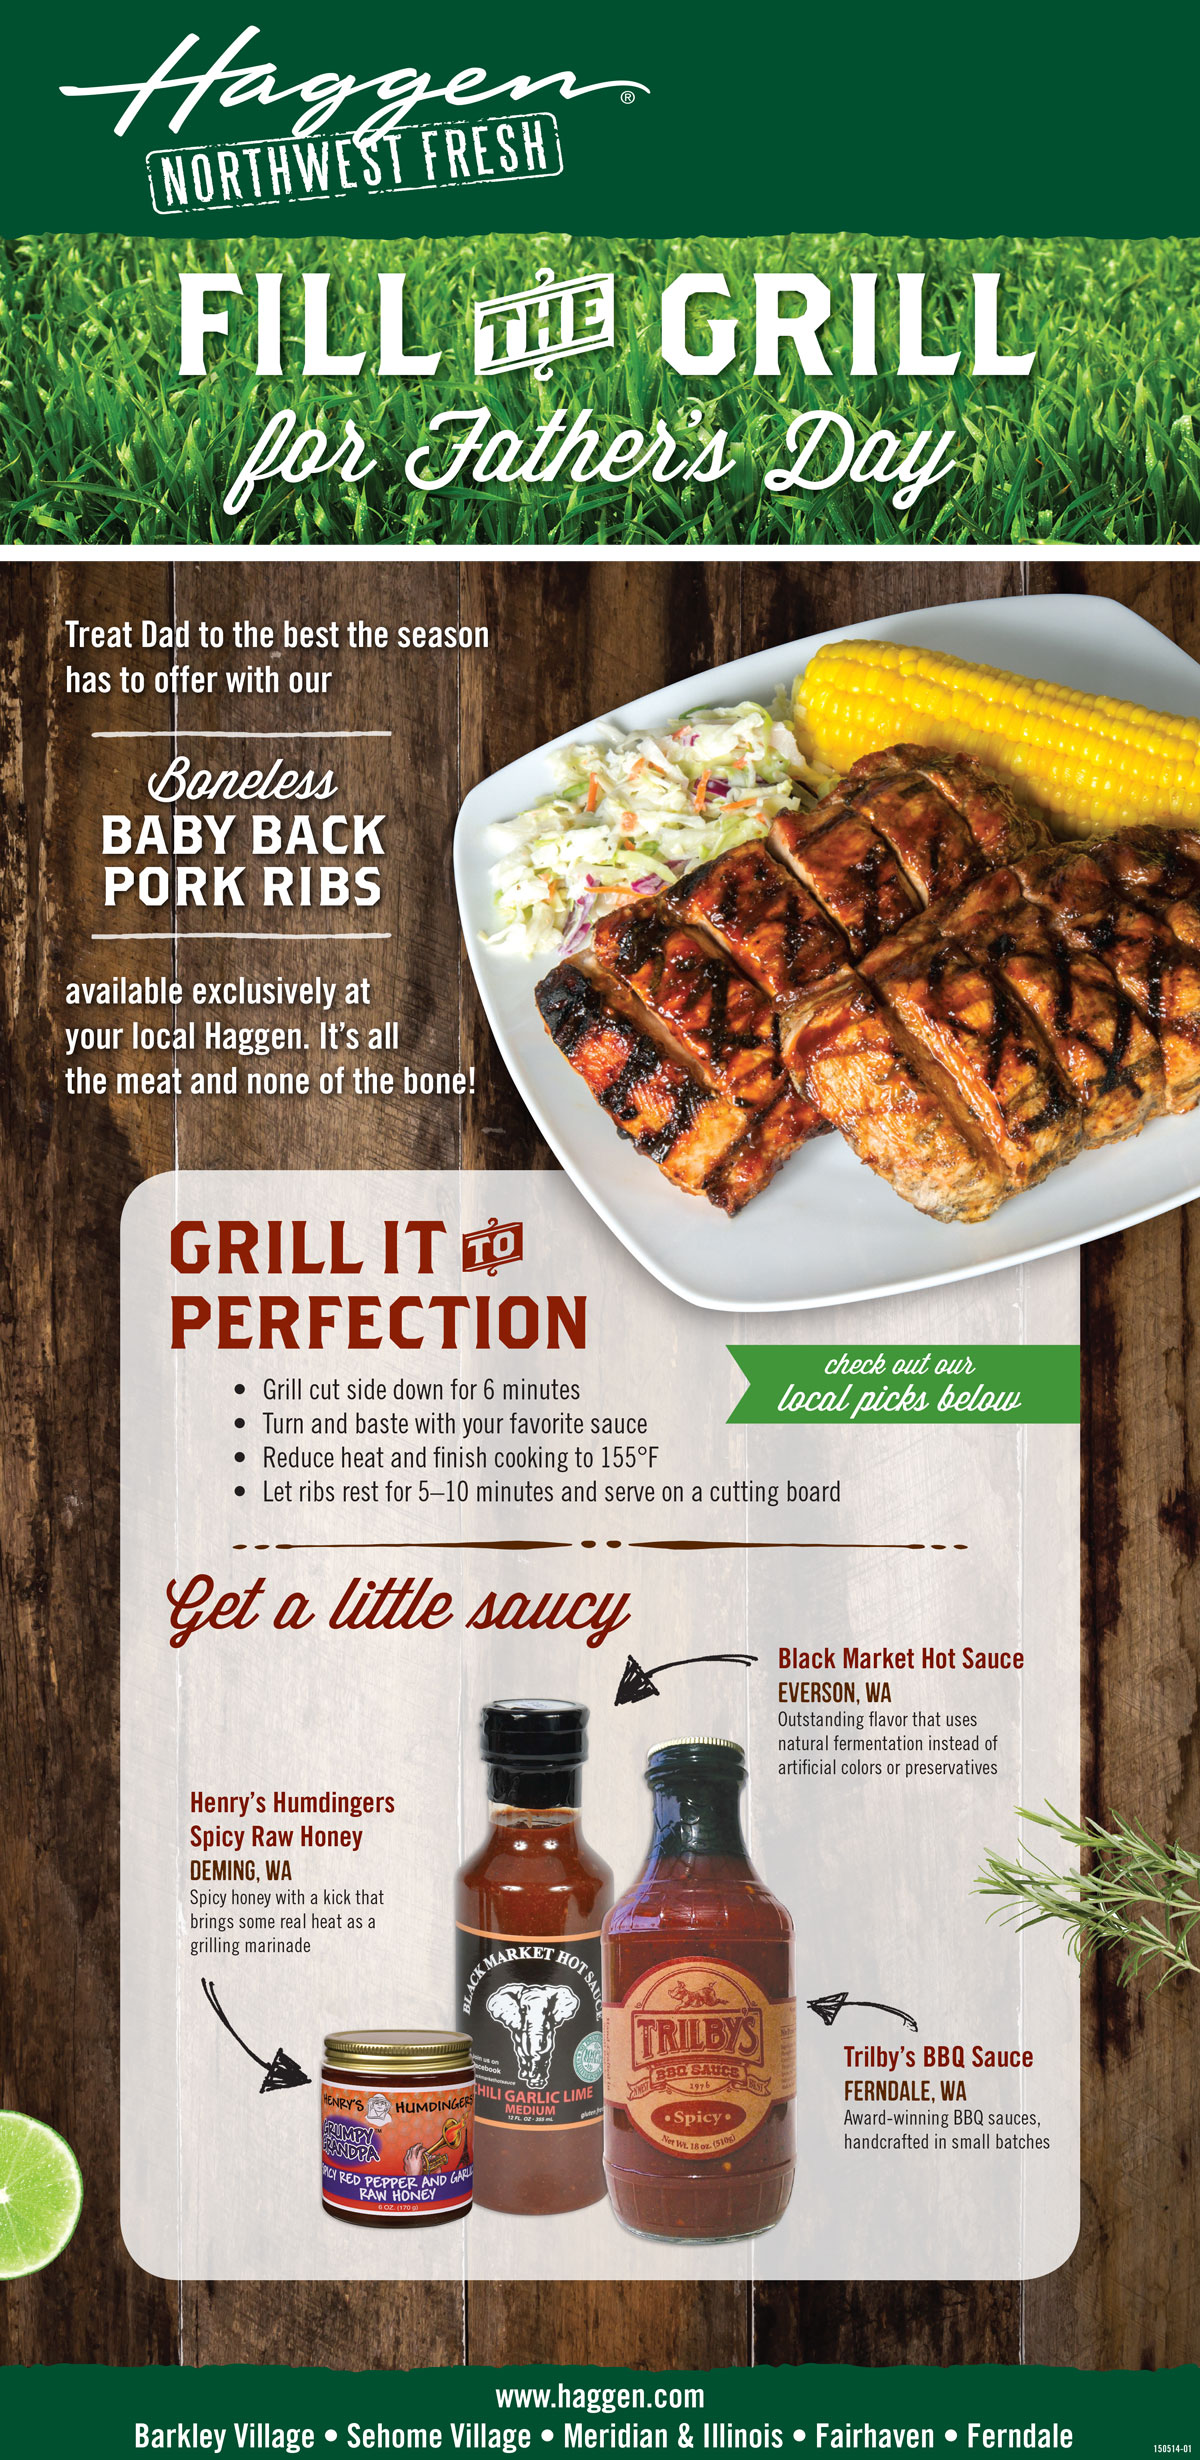 Father's Day Grilling design to feature locally made barbecue sauces and Haggen's new baby back ribs. Campaign was delivered across print, digital and instore displays.